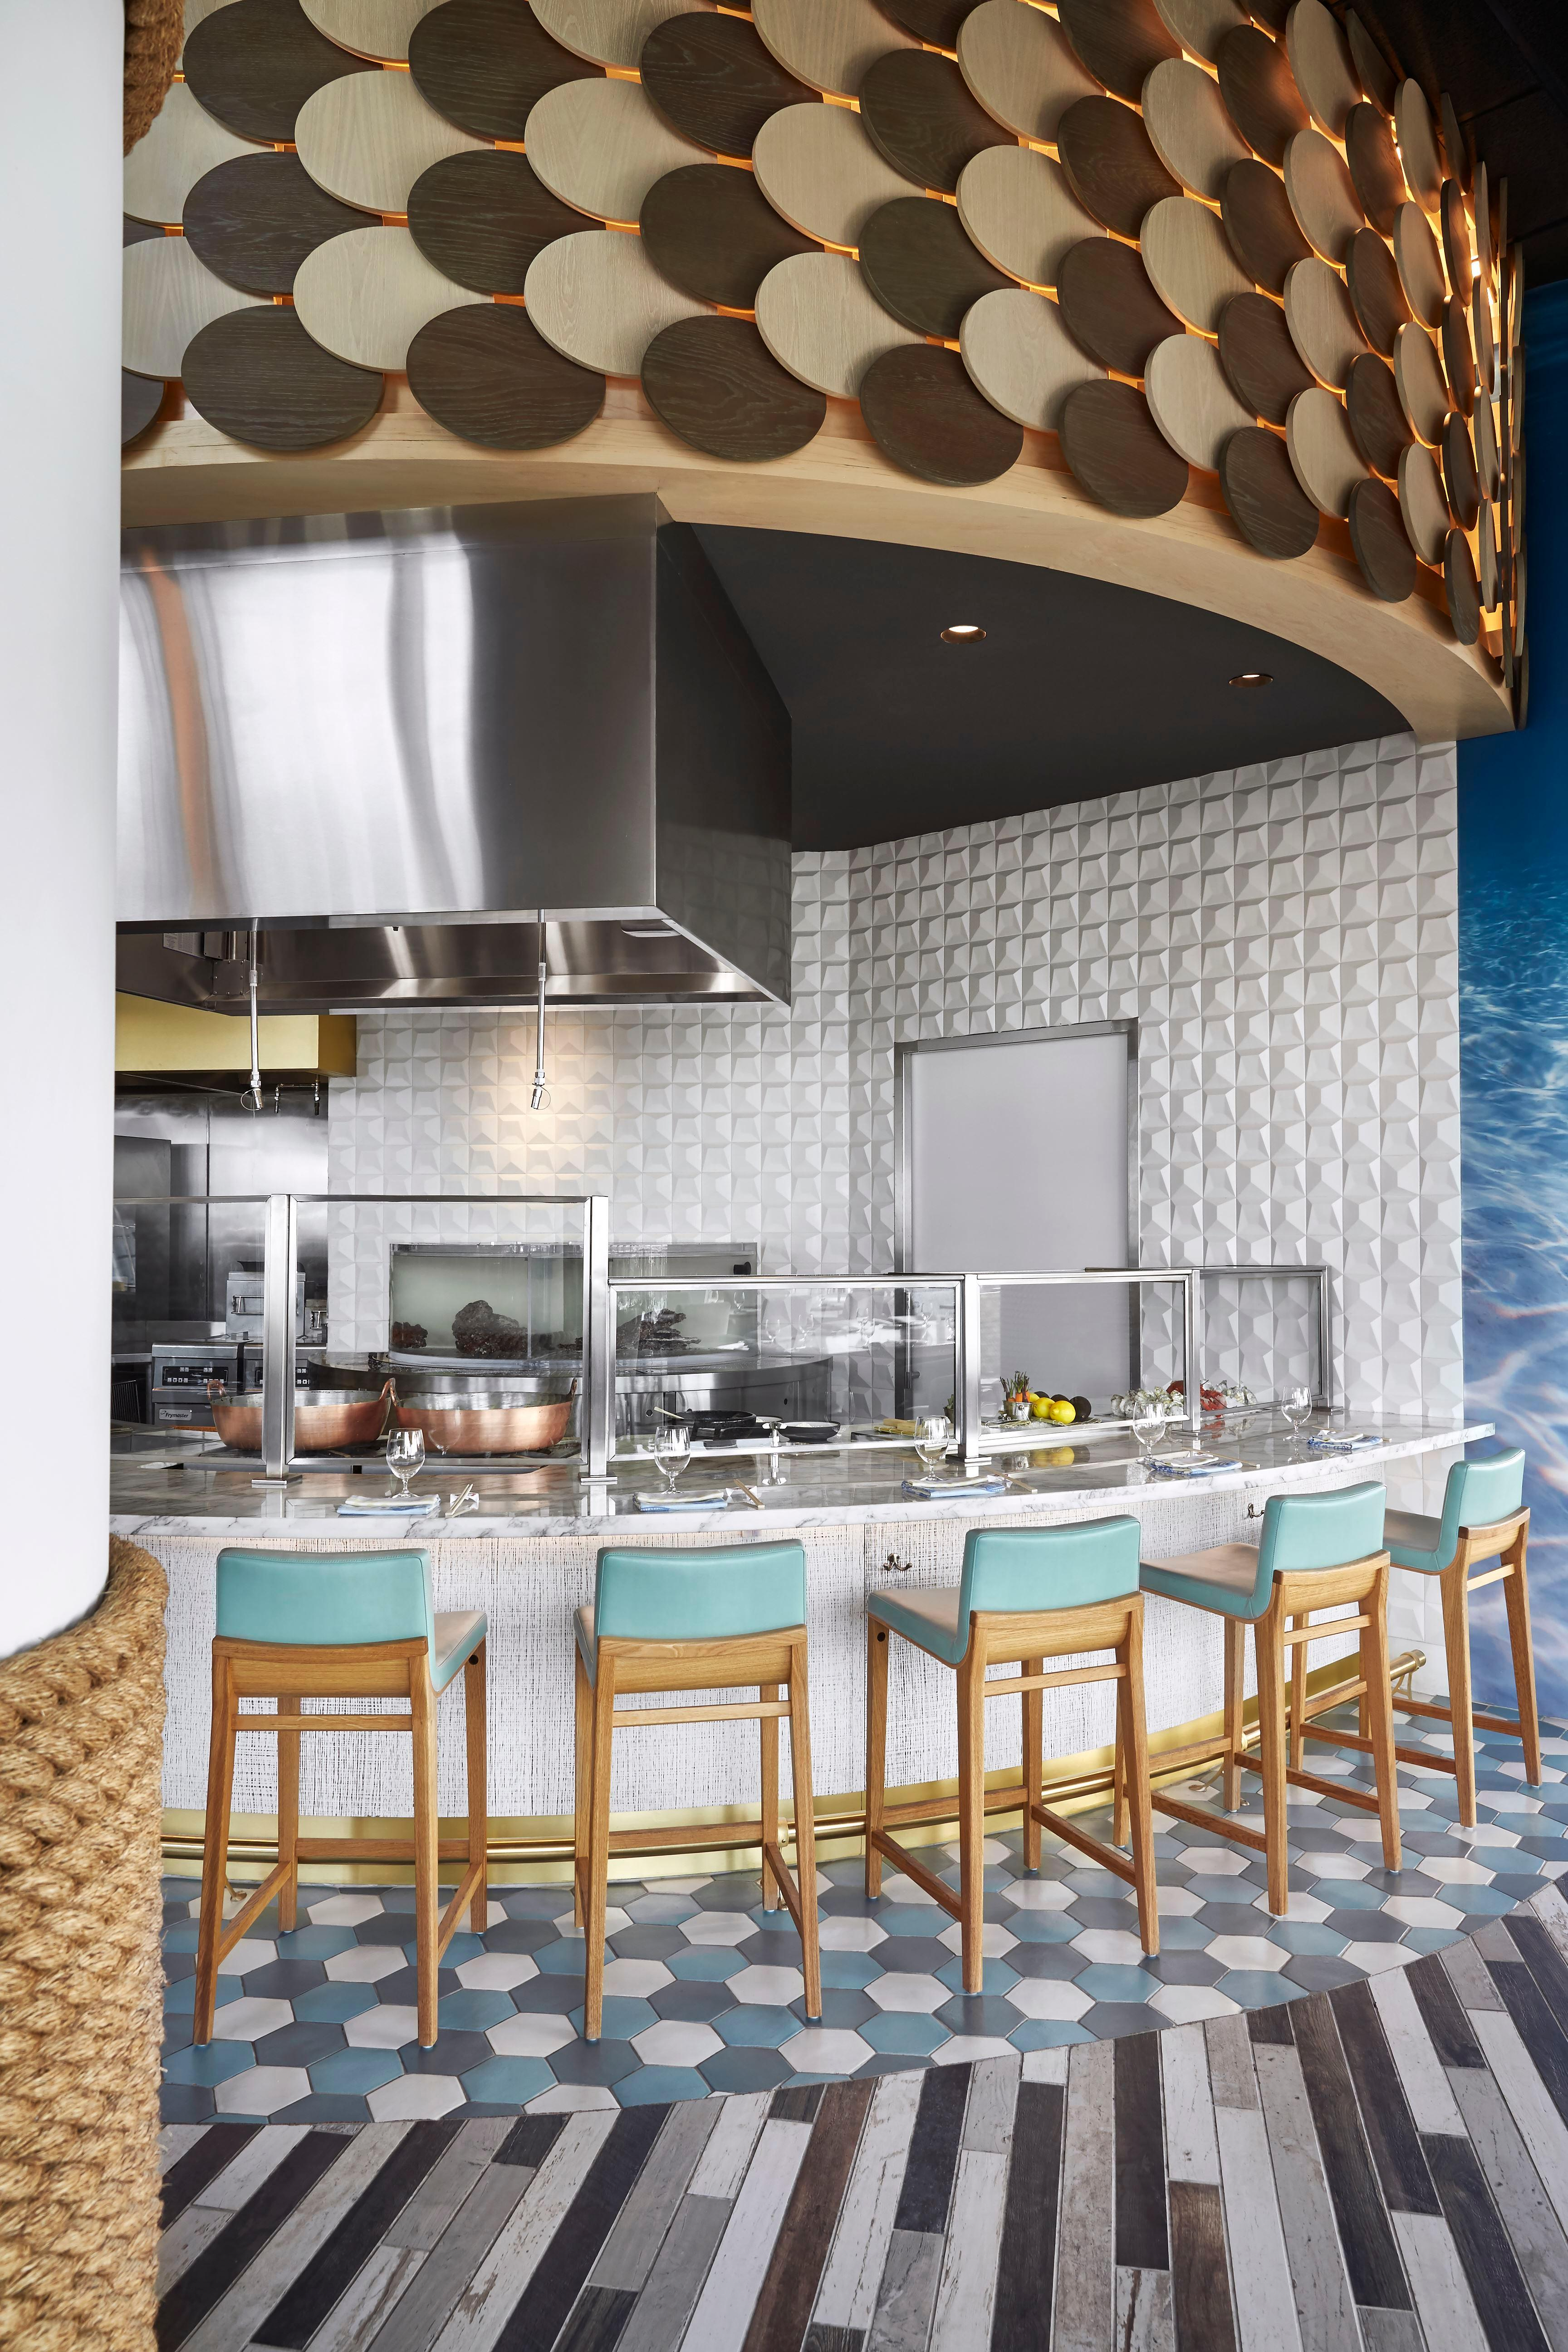 At the 6-seat bar at his outpost at the MGM National Harbor Fish by José Andrés', the Spanish chef was inspired to take classic American fried seafood dishes--clams, fish, oysters--and elevate them to a new level. (Image: Greg Powers)